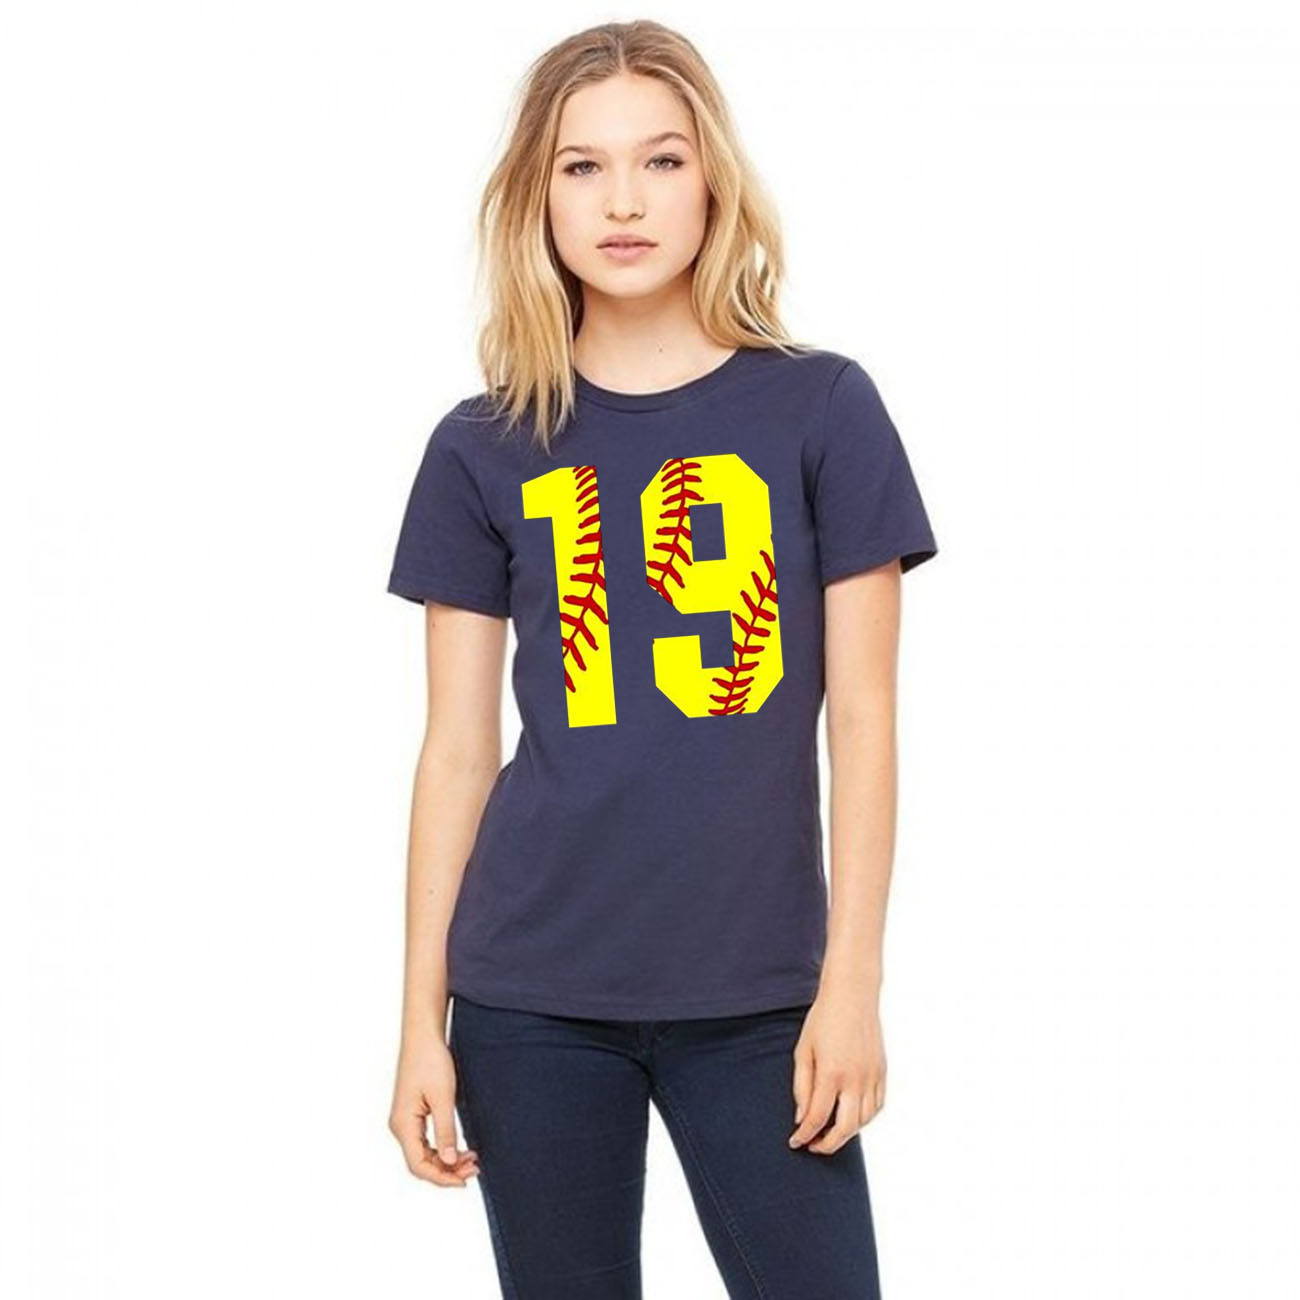 #19 Birthday Girl Softball Mom Fastpitch Softball Jersey Classic T-Shirt